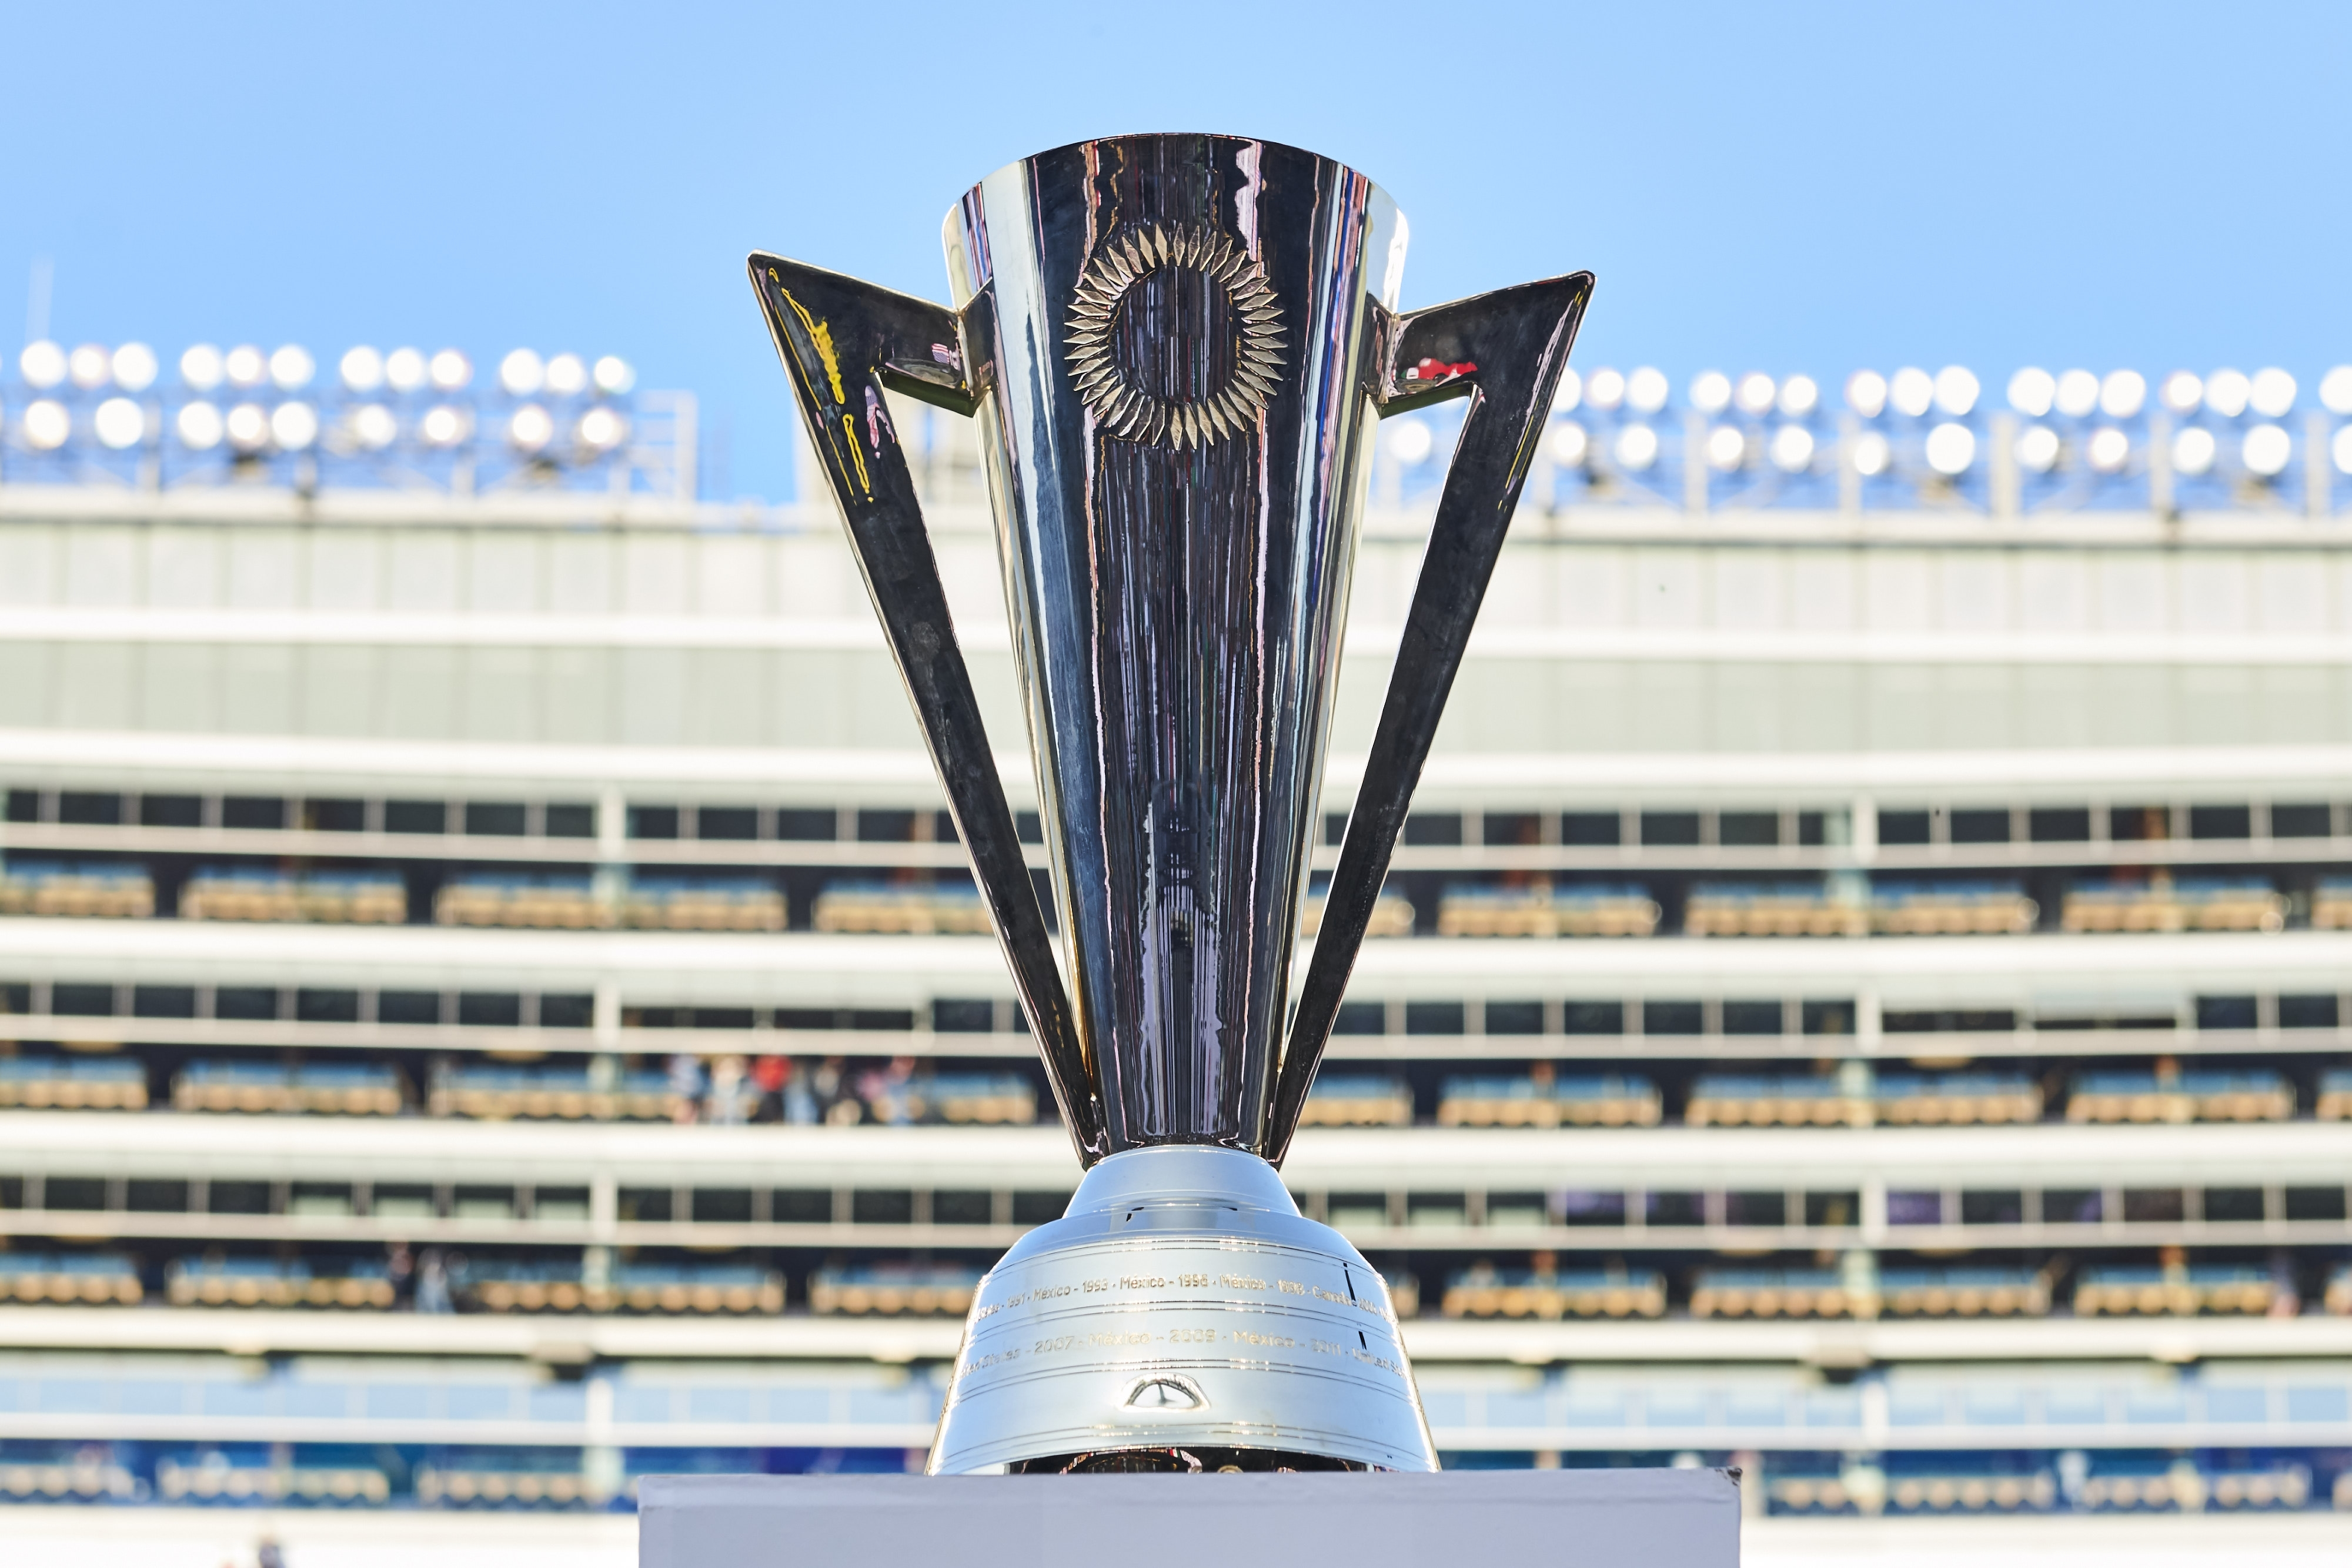 Concacaf announces host cities and stadiums for 2021 Gold Cup